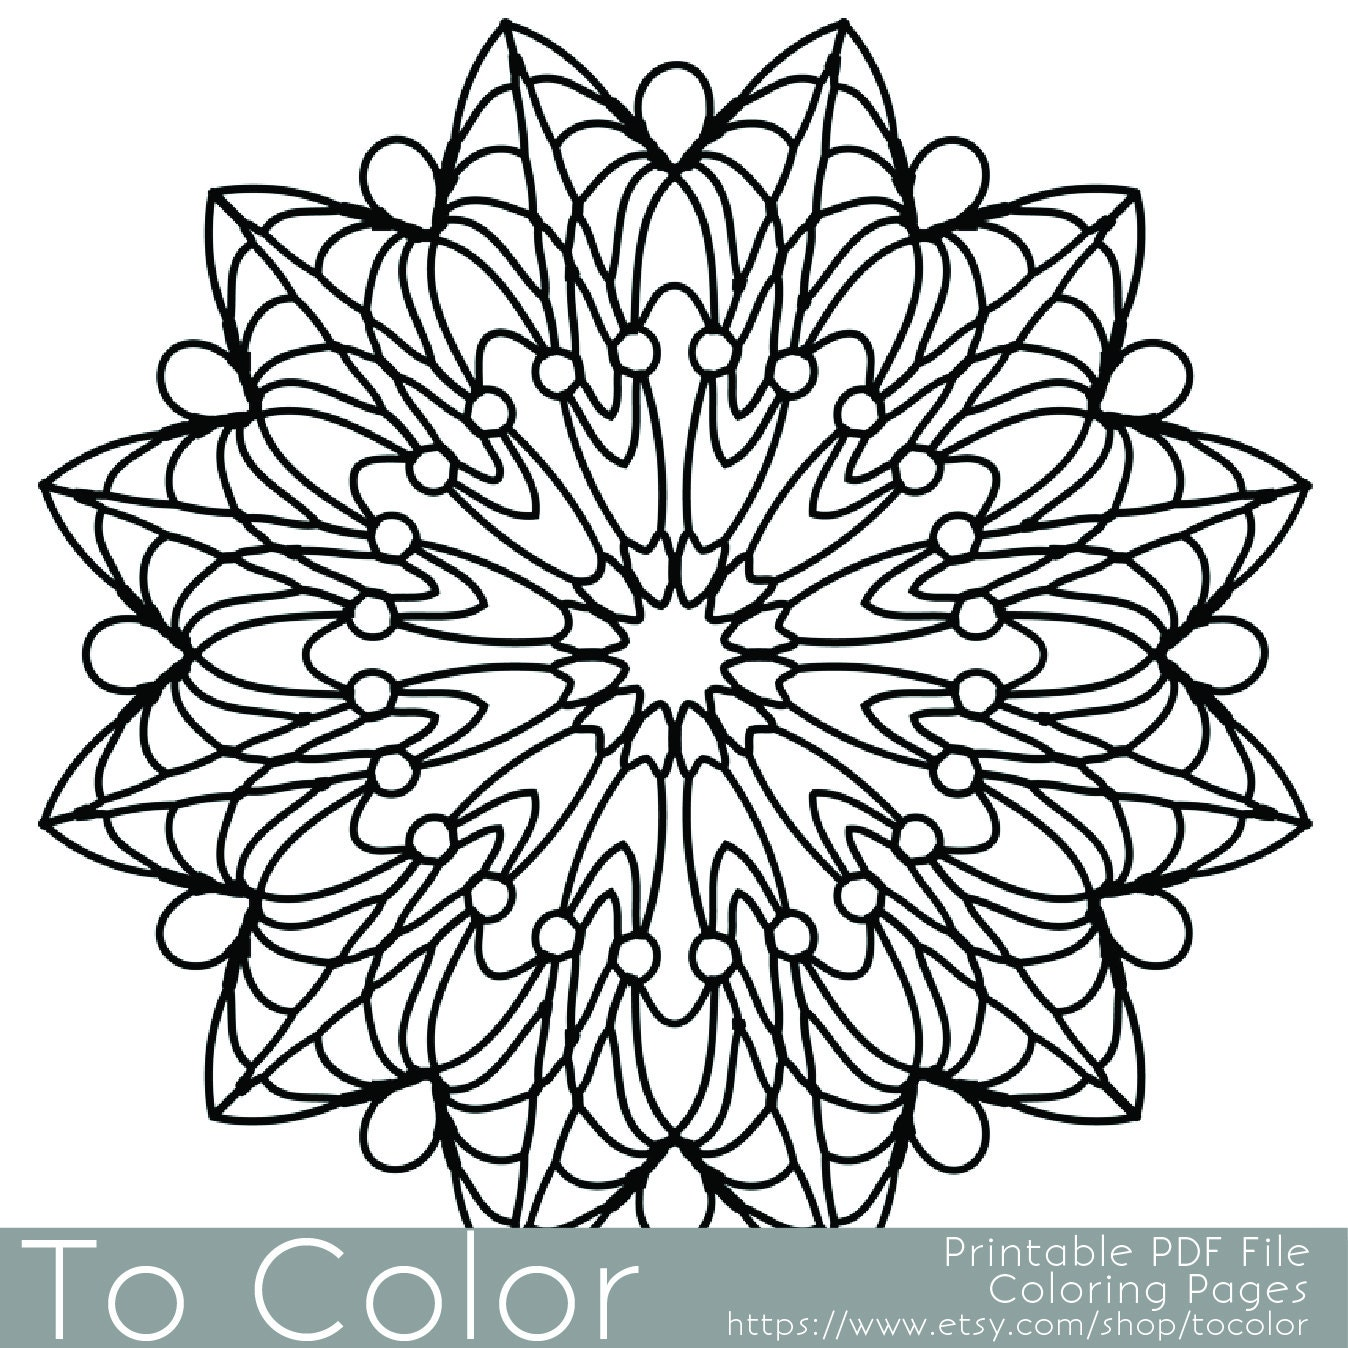 Coloring Pages For Adults: Simple Printable Coloring Pages For Adults Gel Pens Mandala